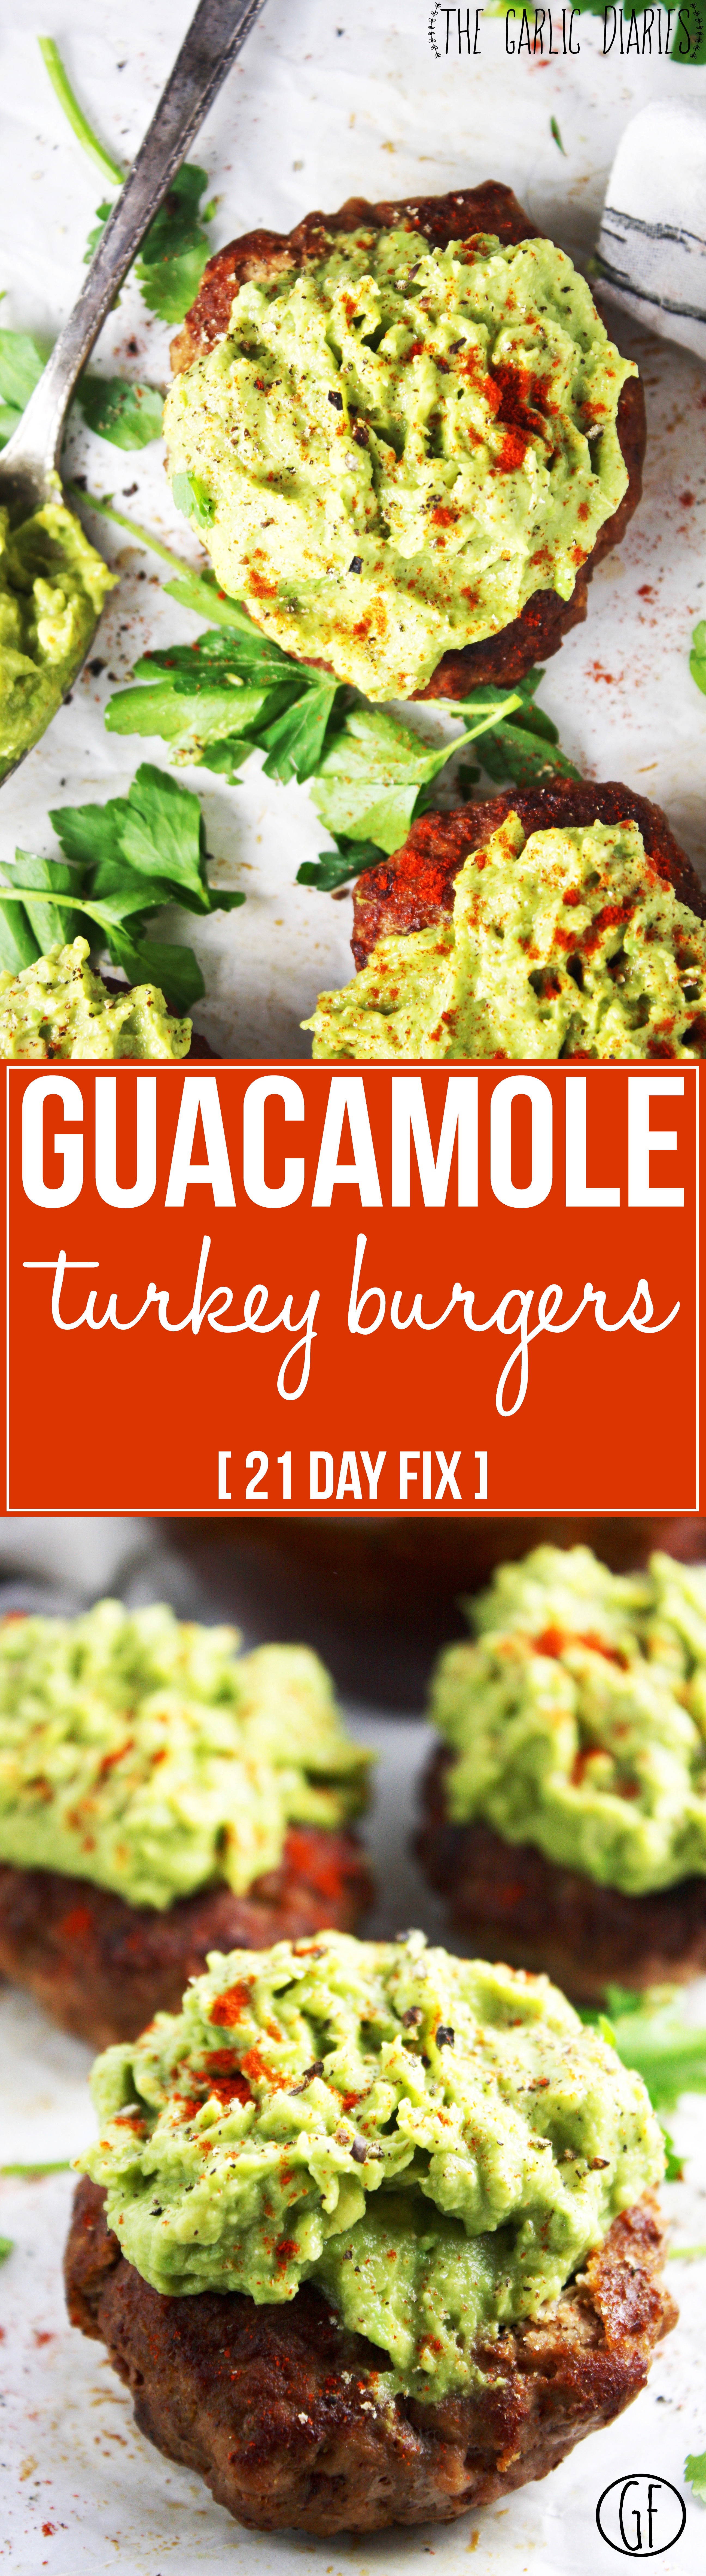 guacamole turkey burgers 21 day fix